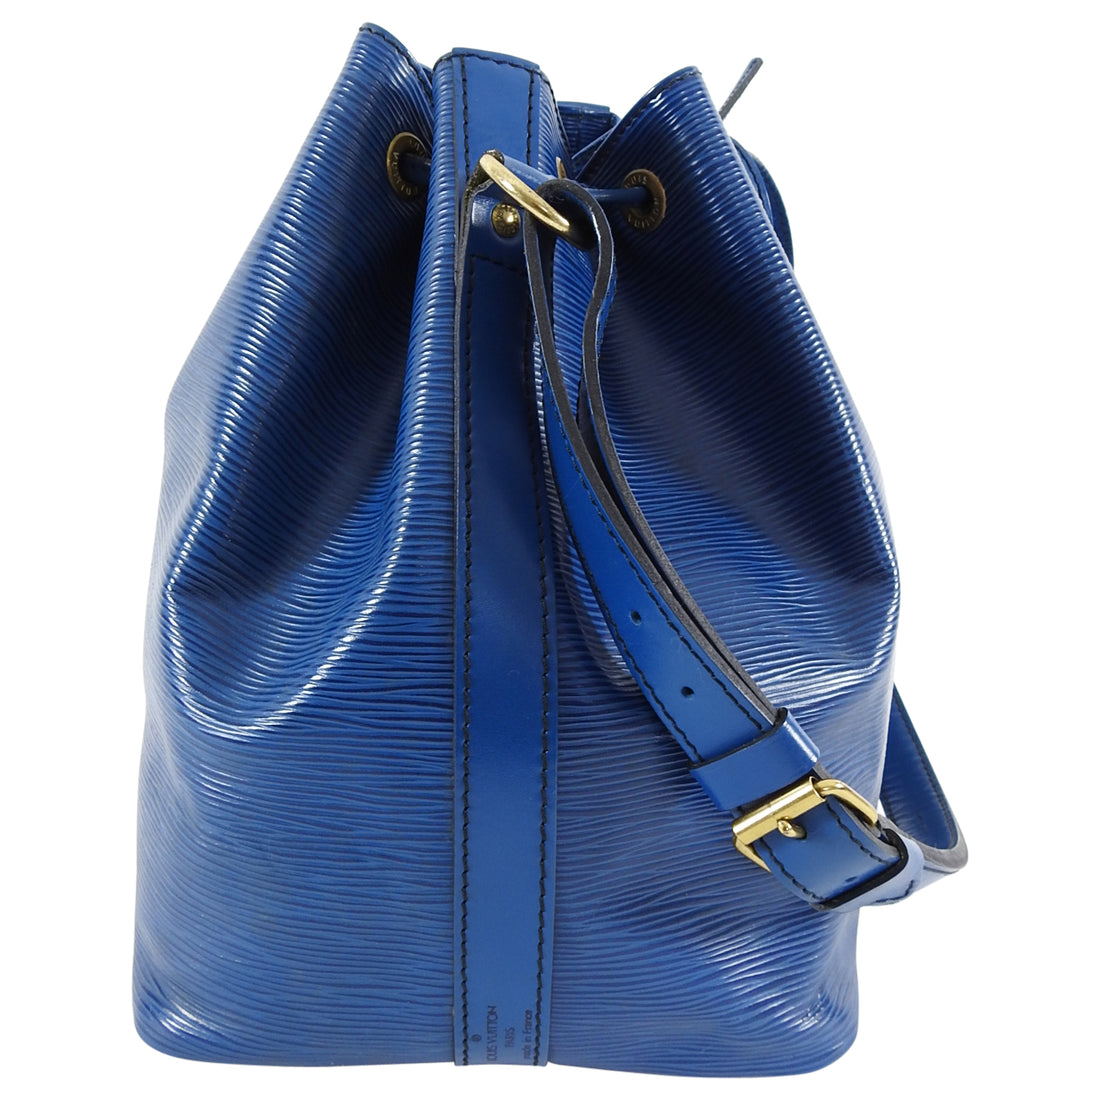 Louis Vuitton Vintage 1992 Blue Epi Petite Noe PM Bag